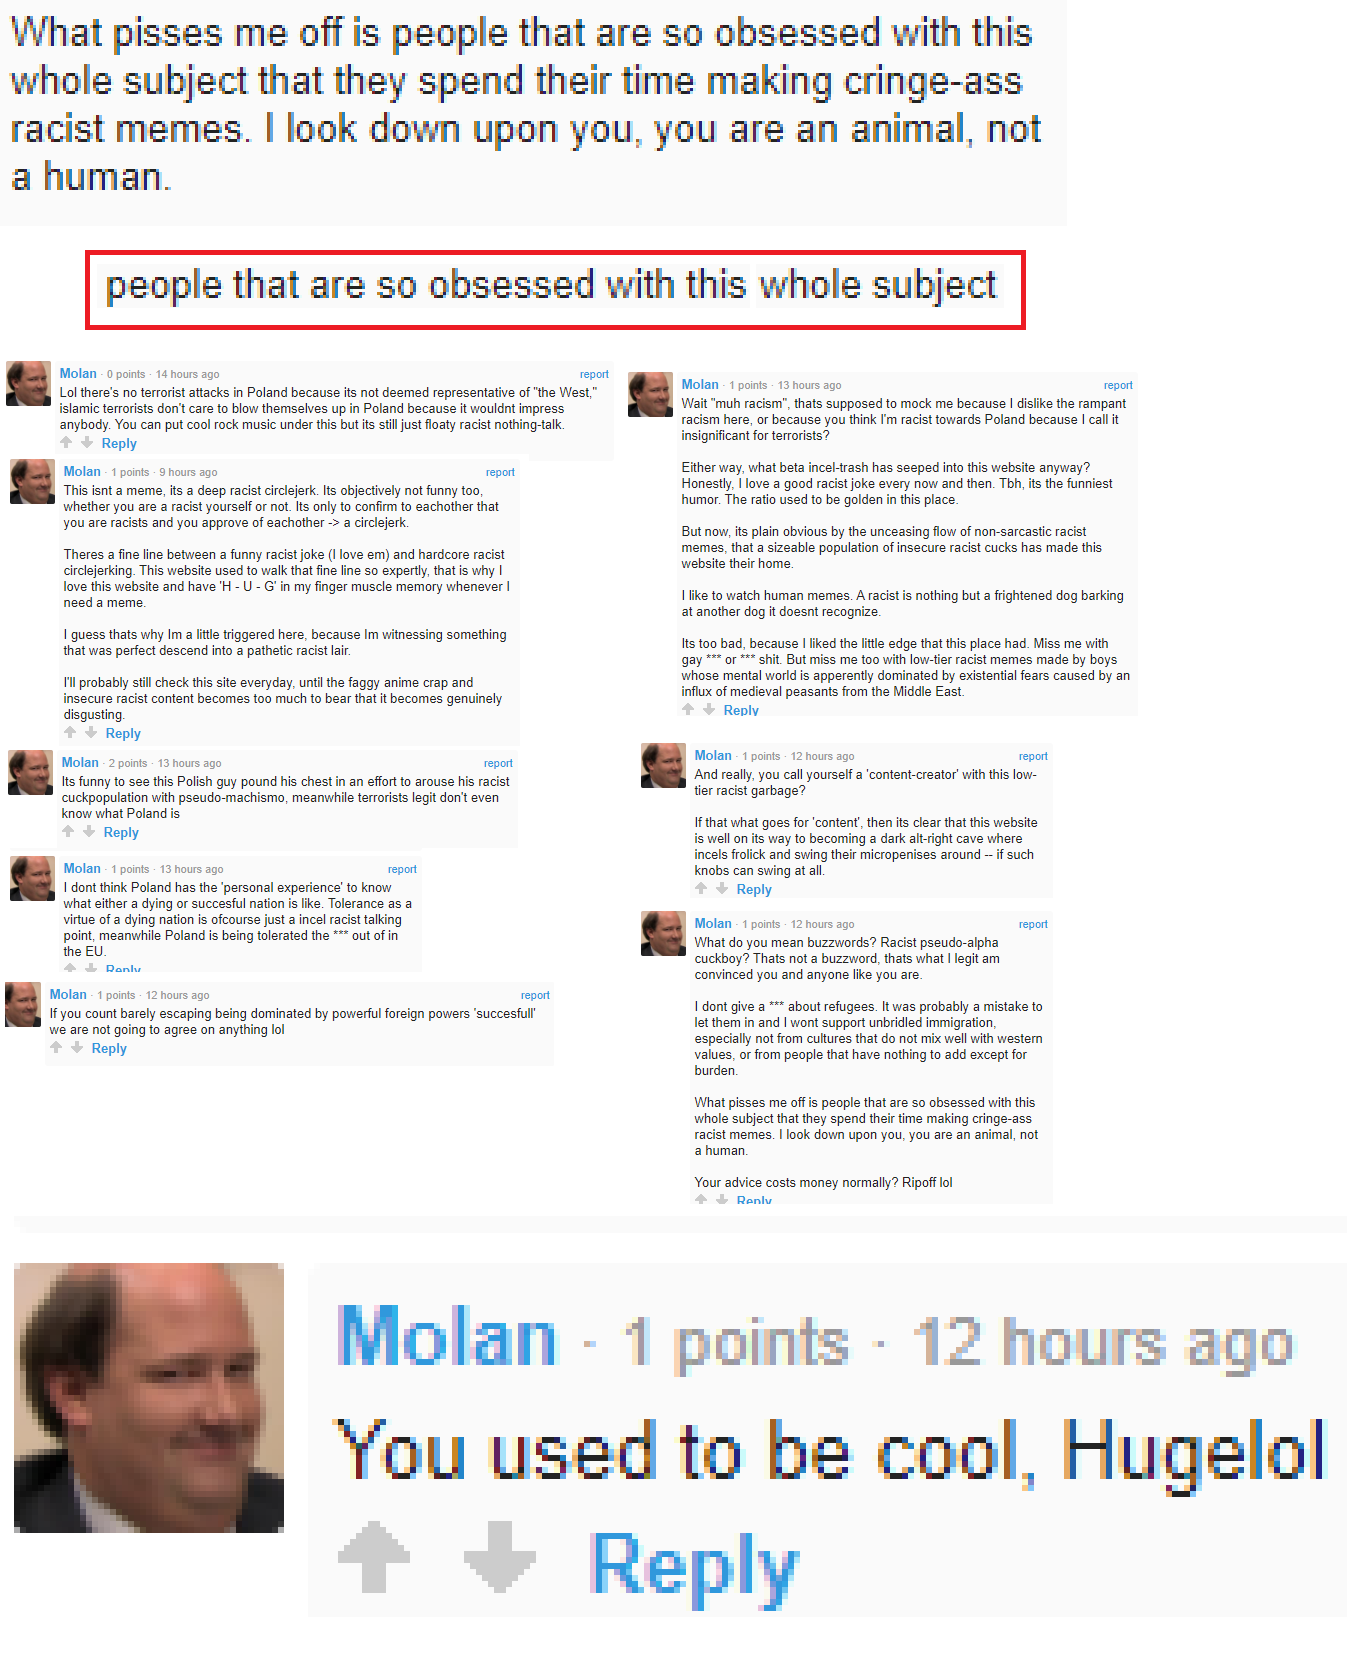 You used to be cool, Hugelol